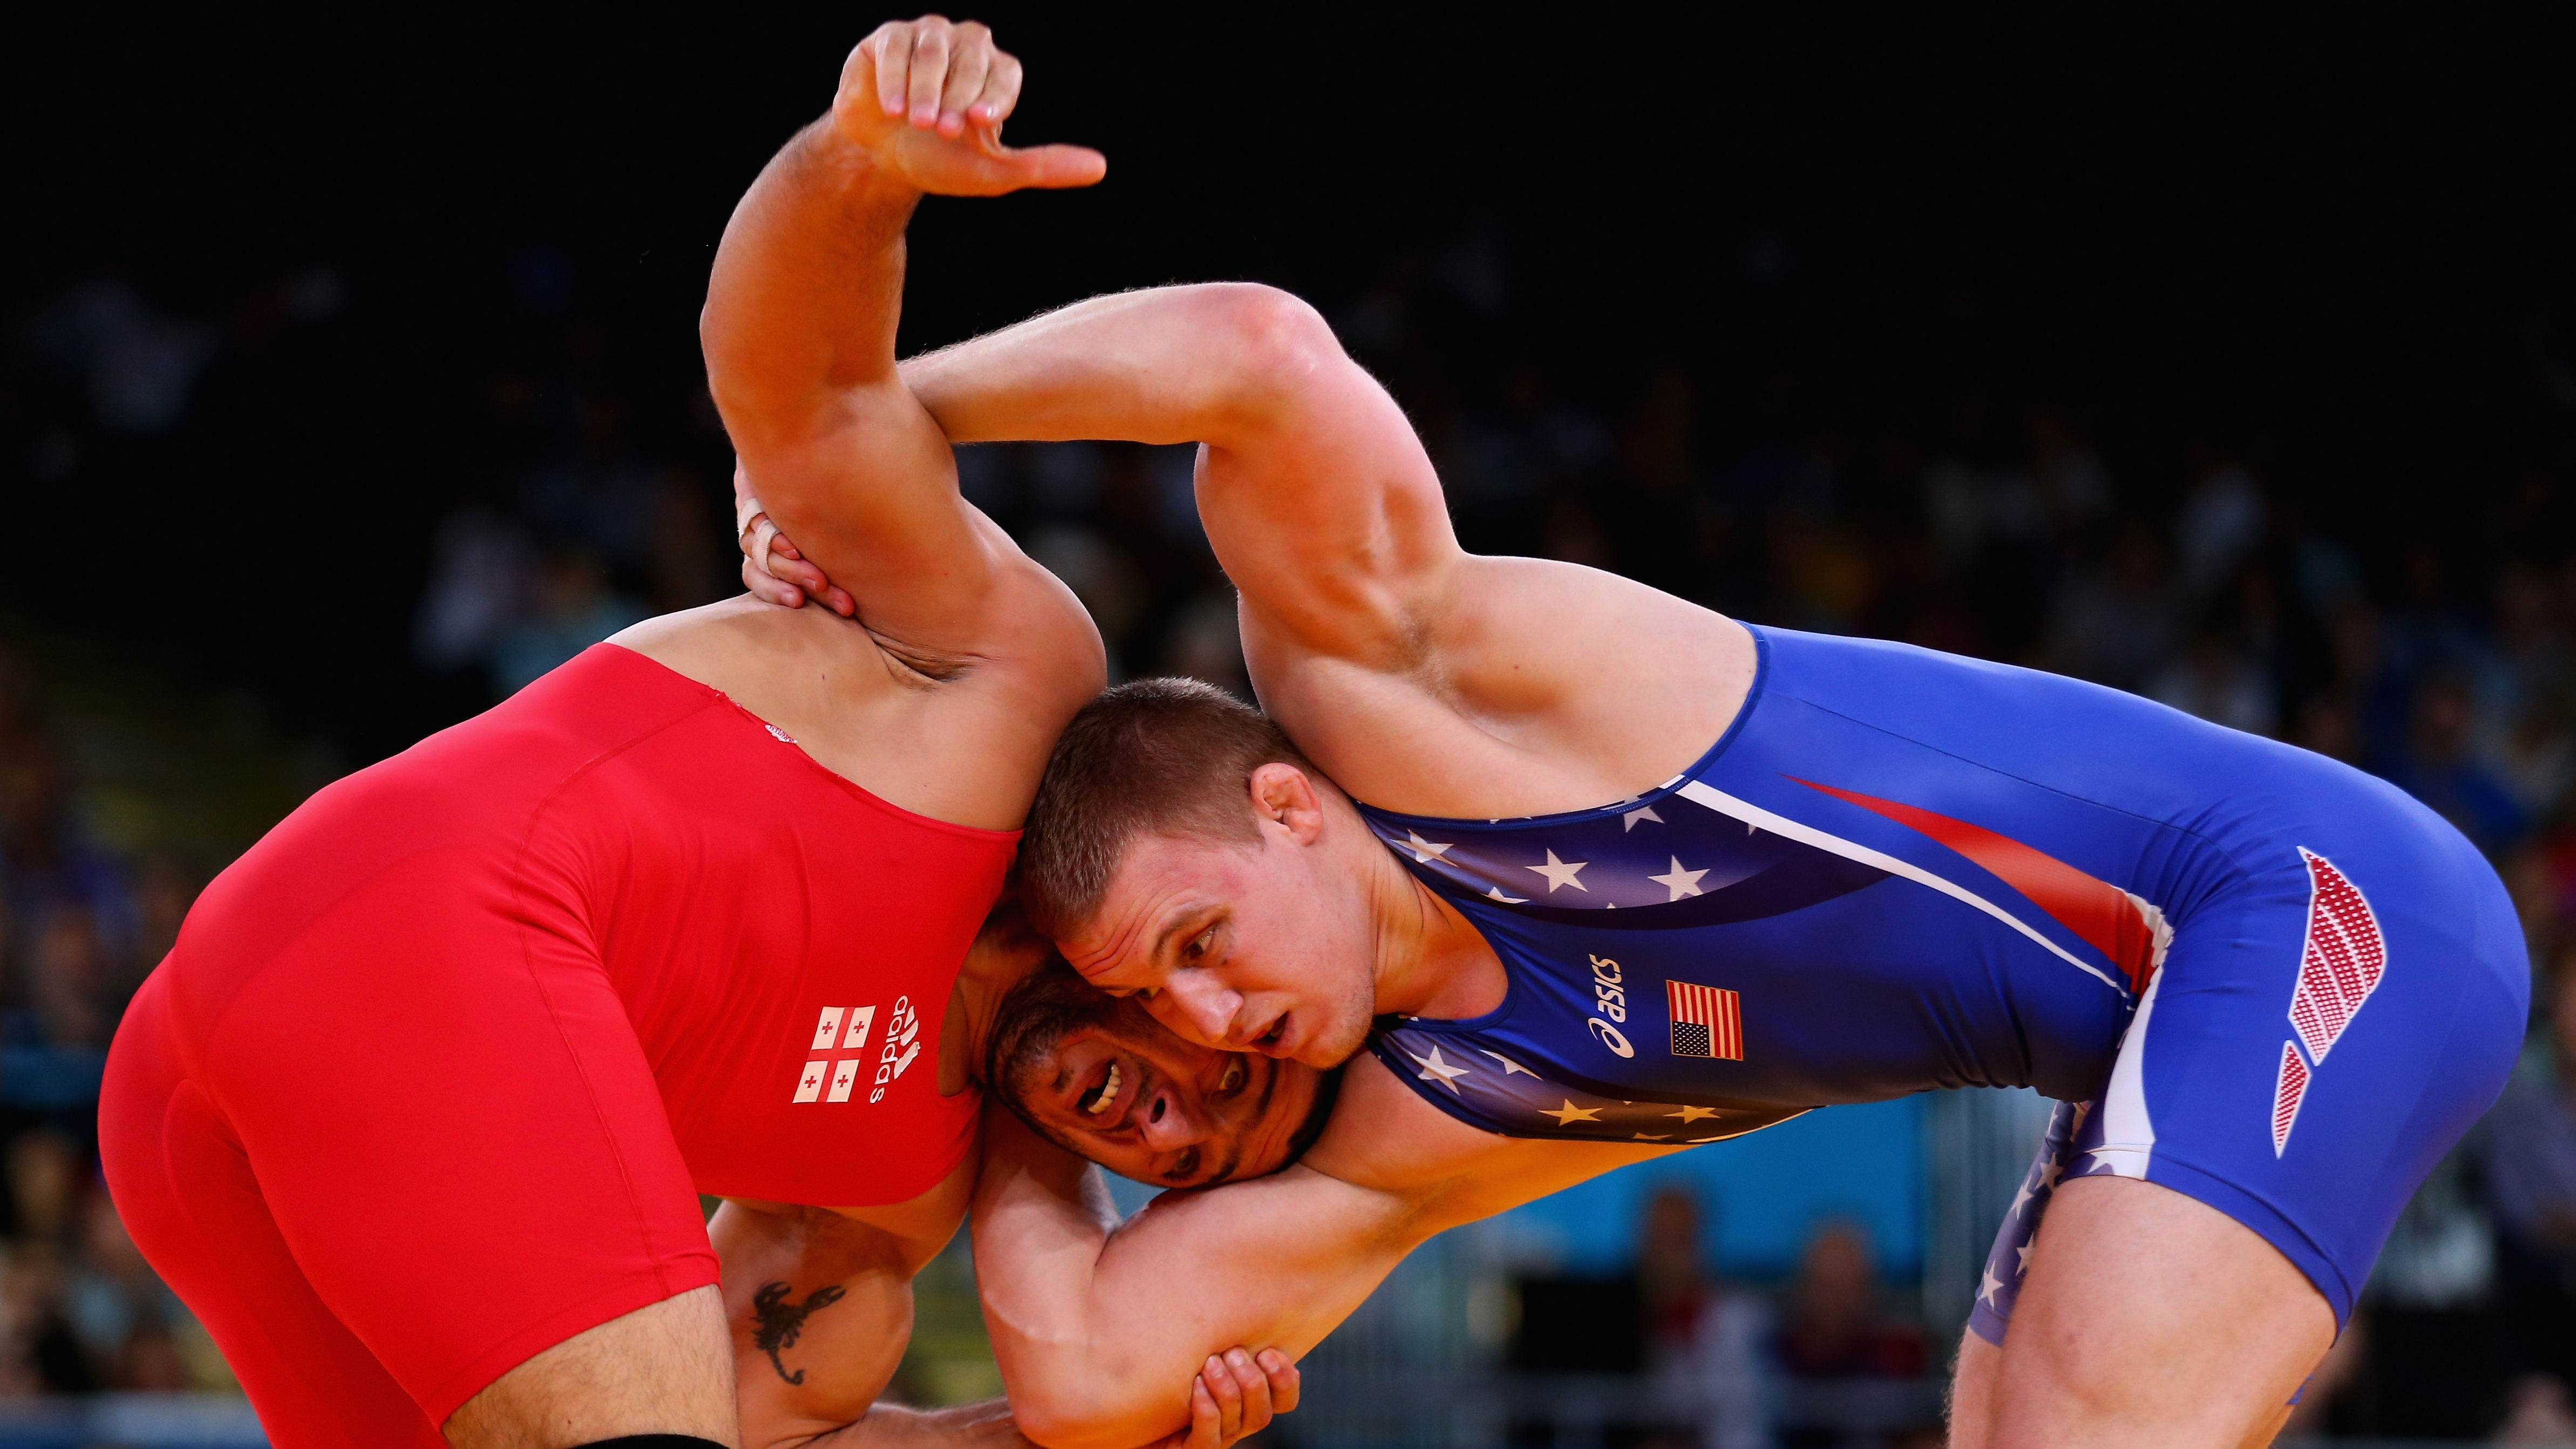 Jacob Stephen Varner of the United States in action against George Gogshelidze of Georgia during the Men's Freestyle Wrestling 96kg semi final match on Day 16 of the London 2012 Olympic Games at ExCeL on August 12, 2012 in London, England.